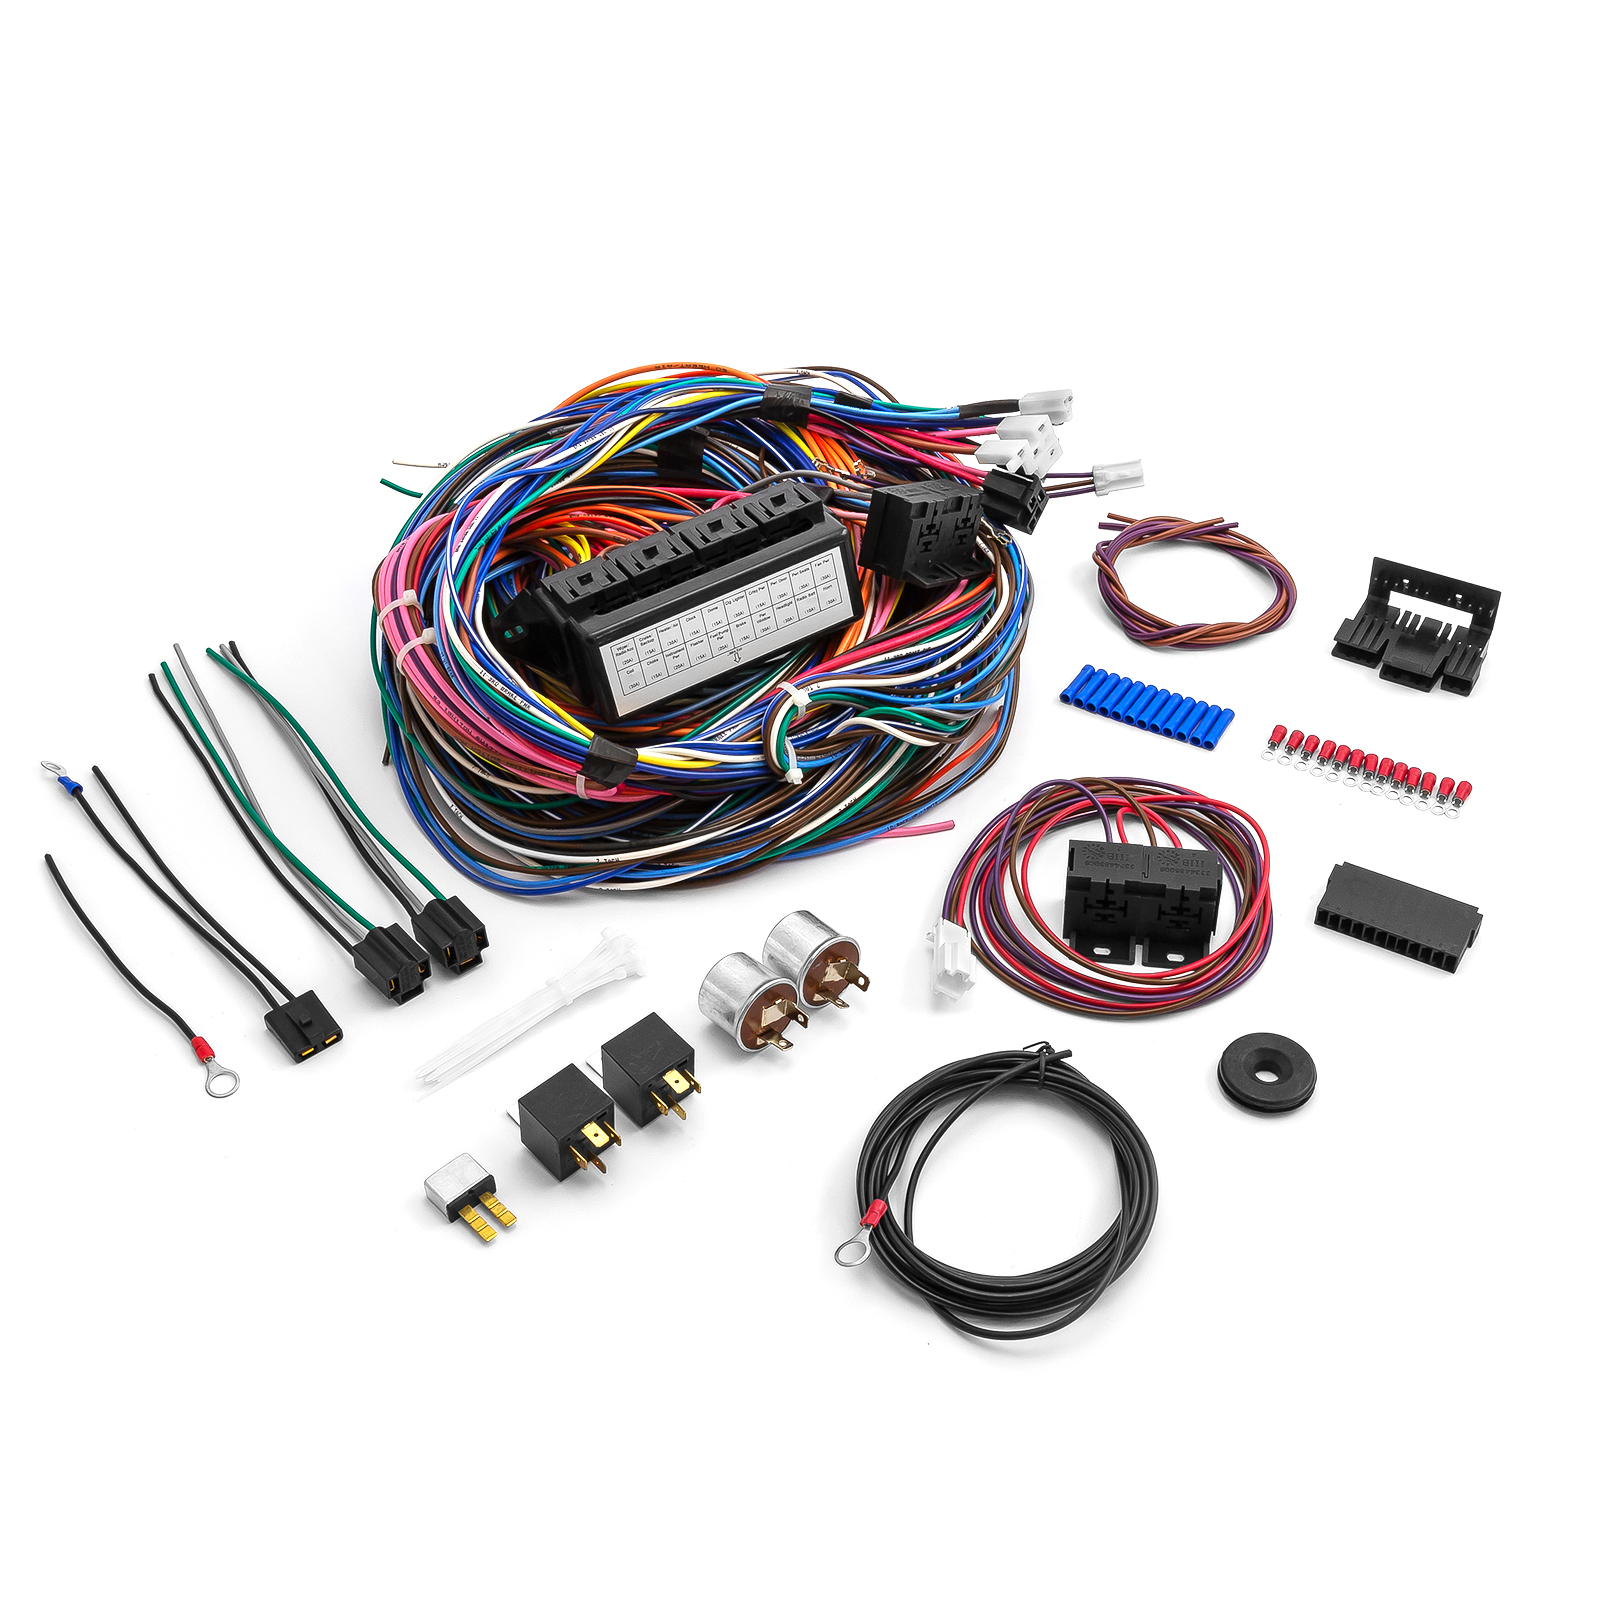 Pro Street Wiring Harness Example Electrical Diagram Universal 20 Circuit Kit Rod Hot Gm